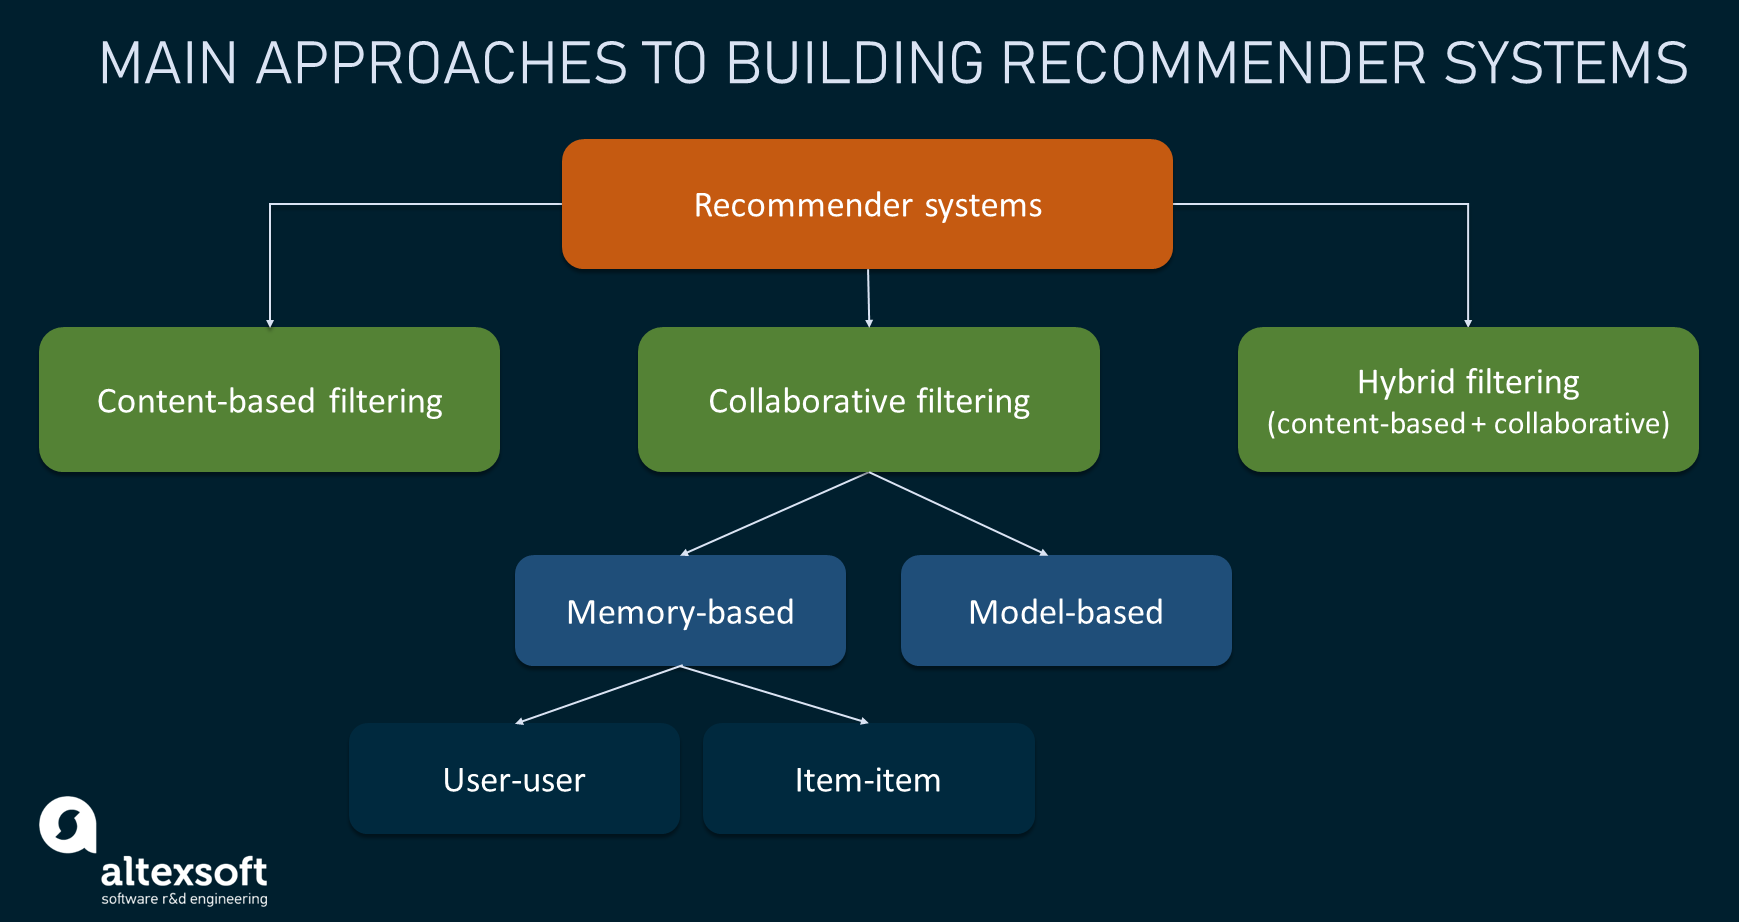 Main approaches to building recommender systems